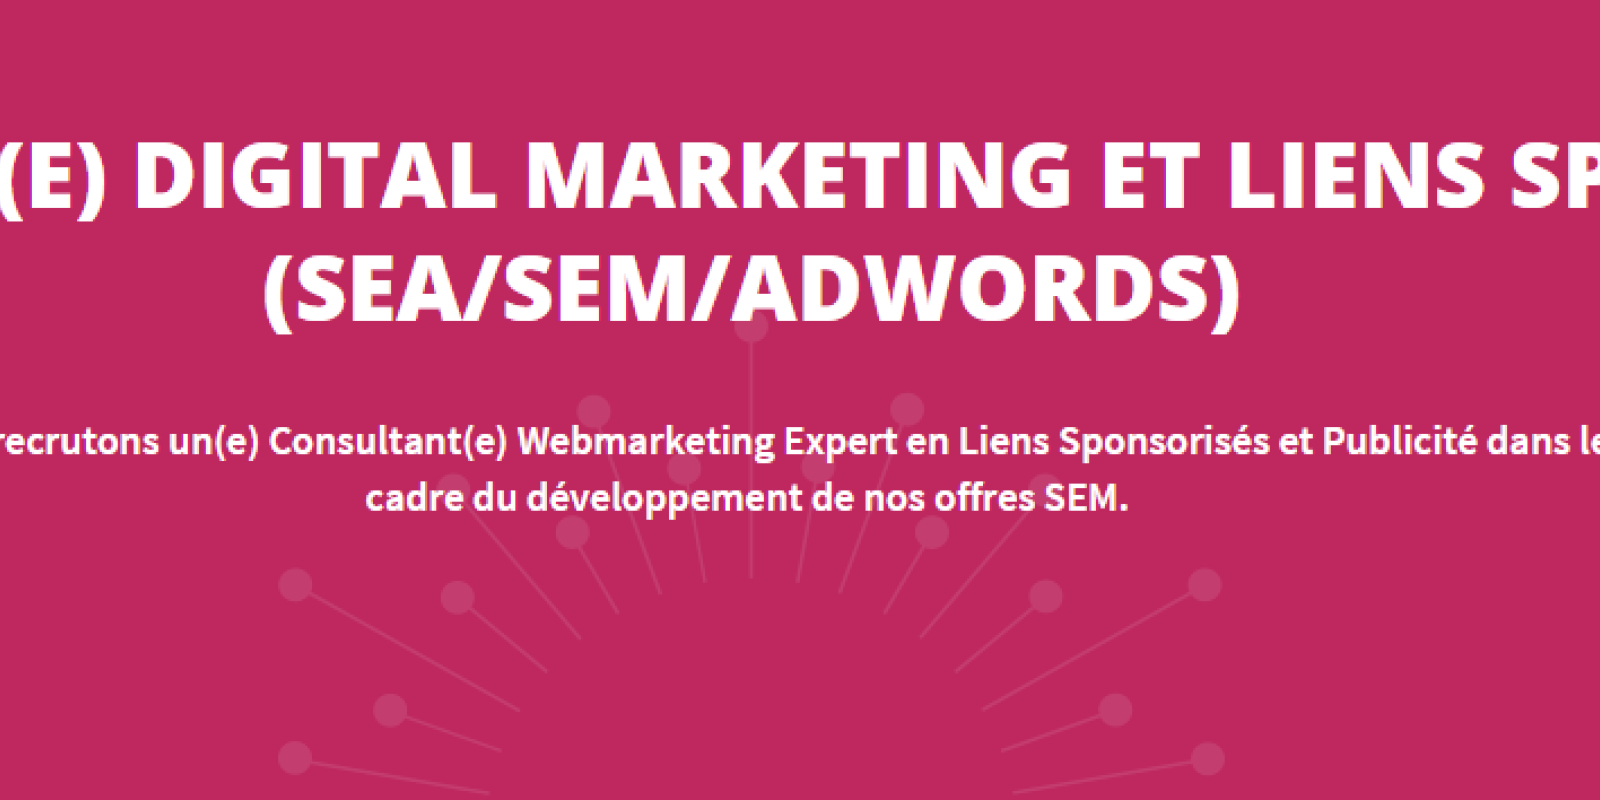 Emploi CONSULTANT(E) DIGITAL MARKETING ET LIENS SPONSORISÉS (SEA/SEM/ADWORDS) Grenoble